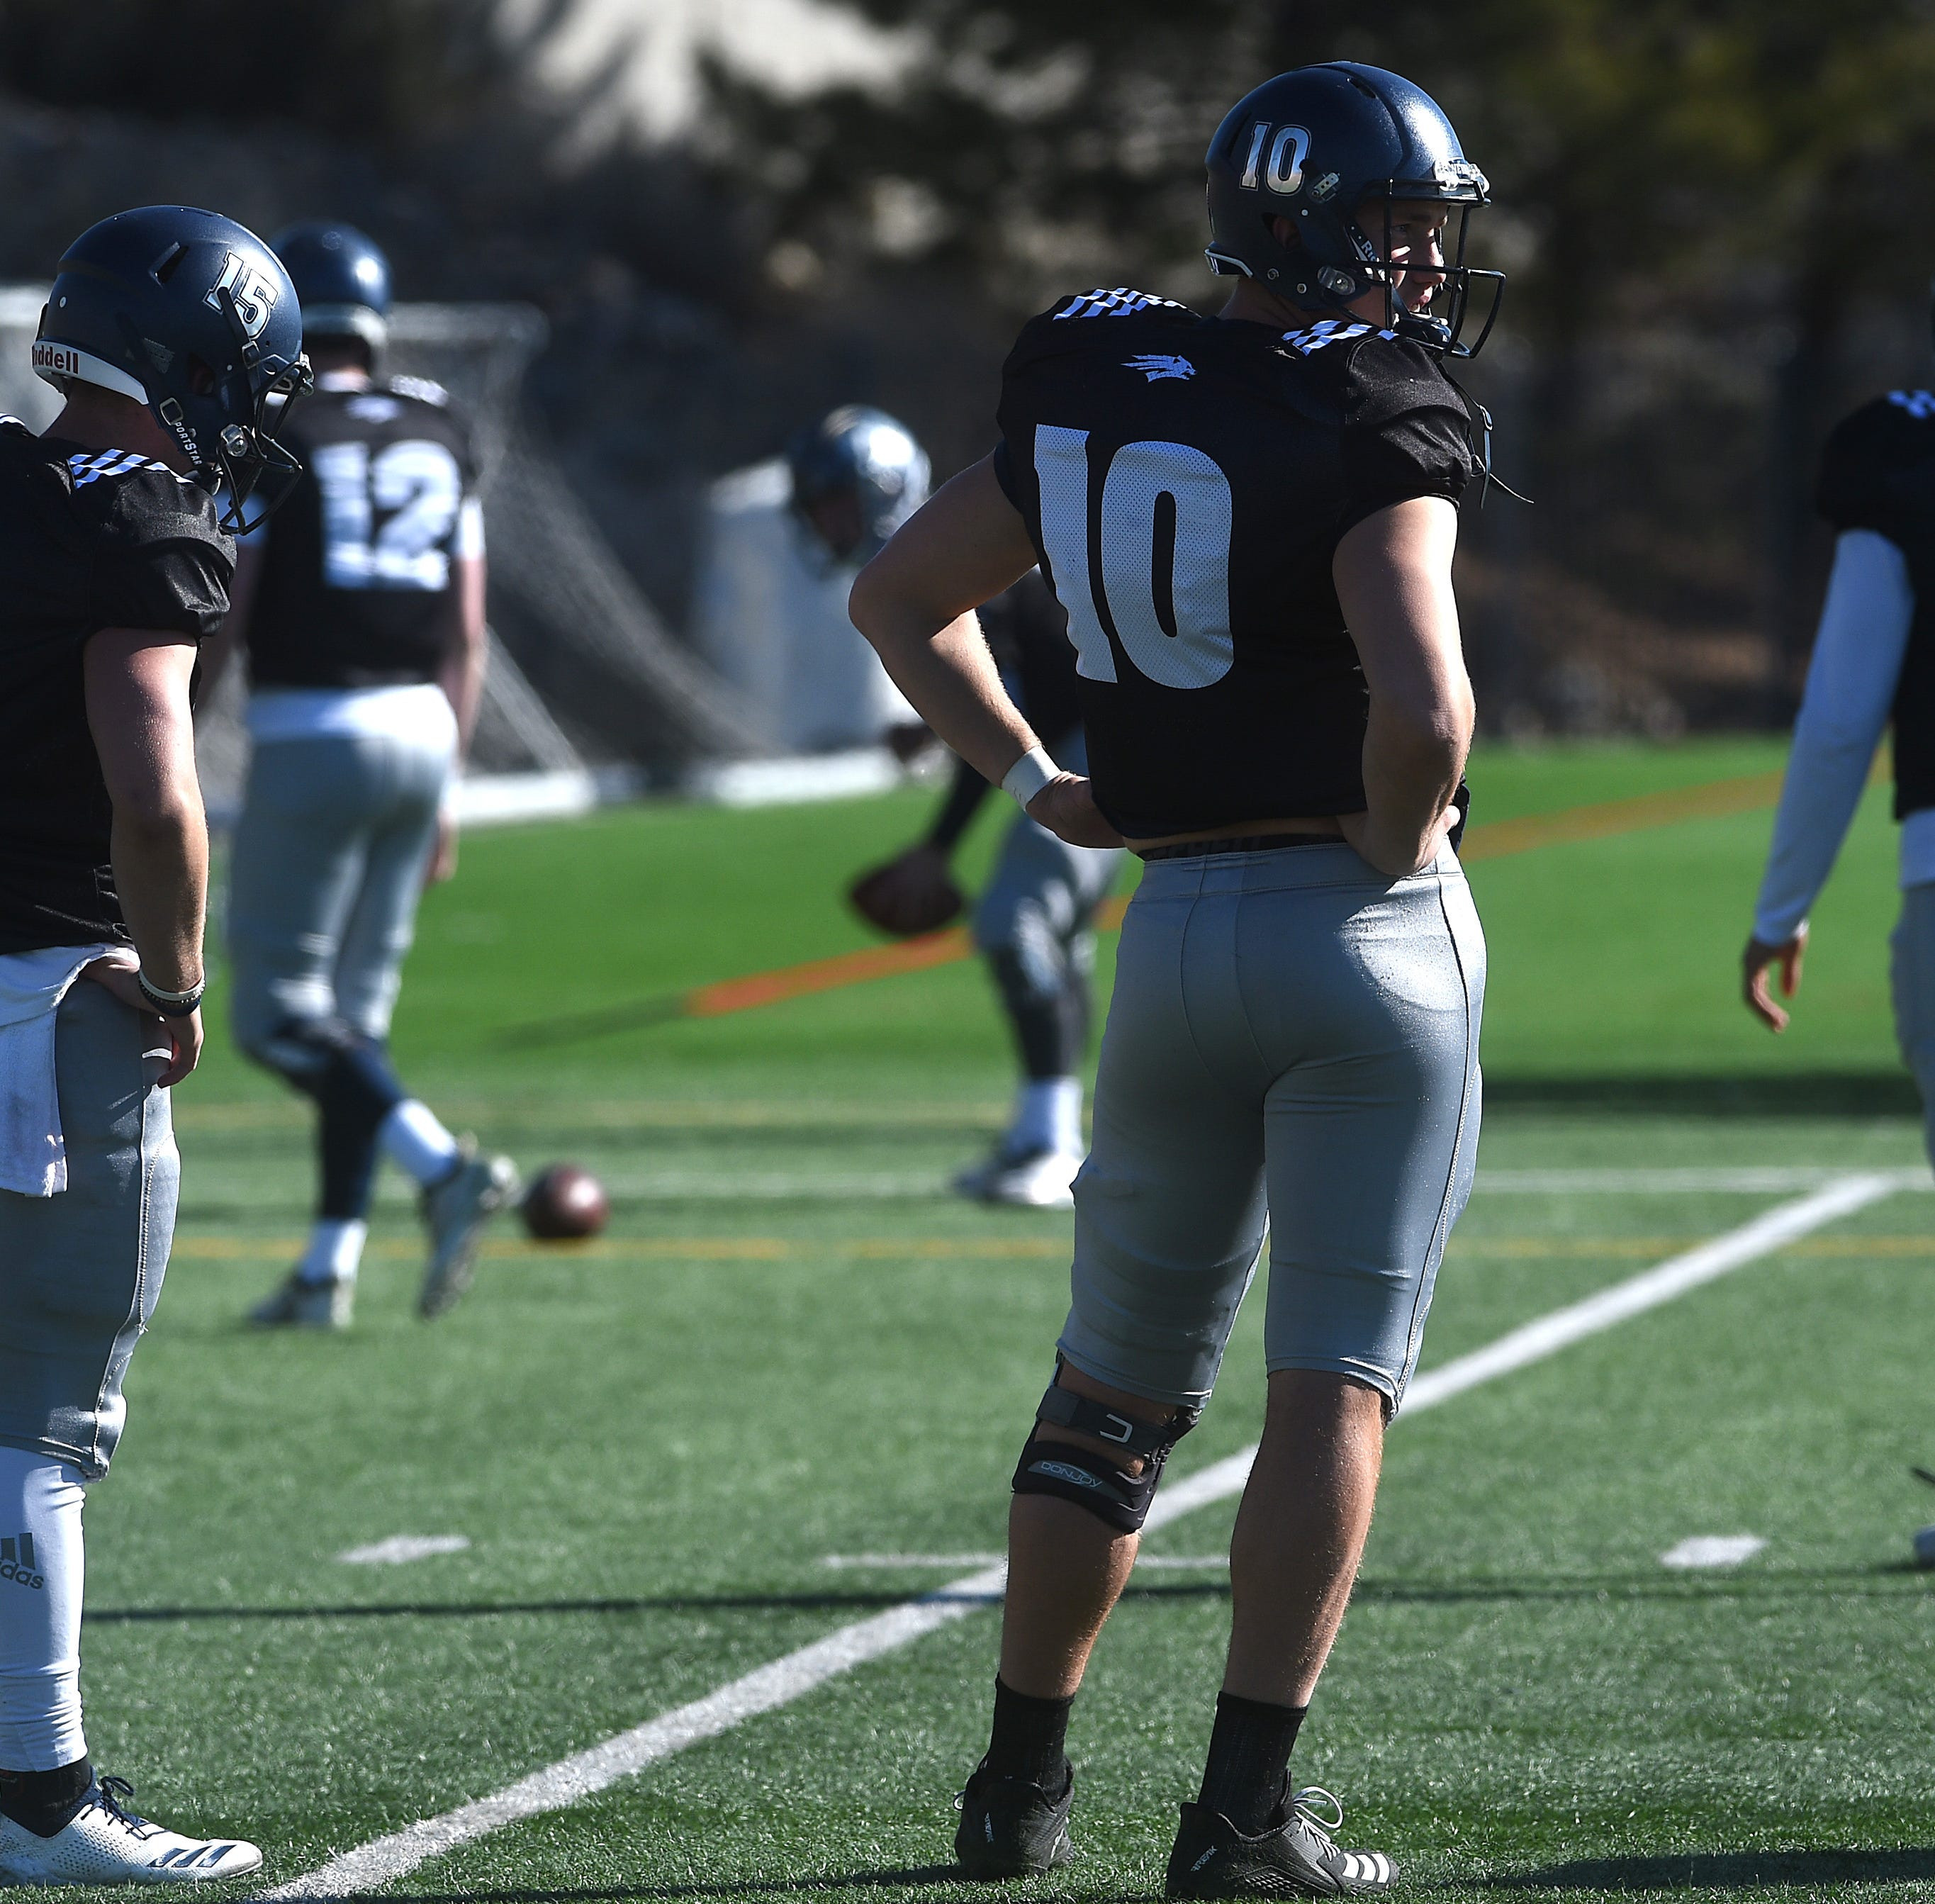 Nevada football: Solano excited to compete for starting QB job